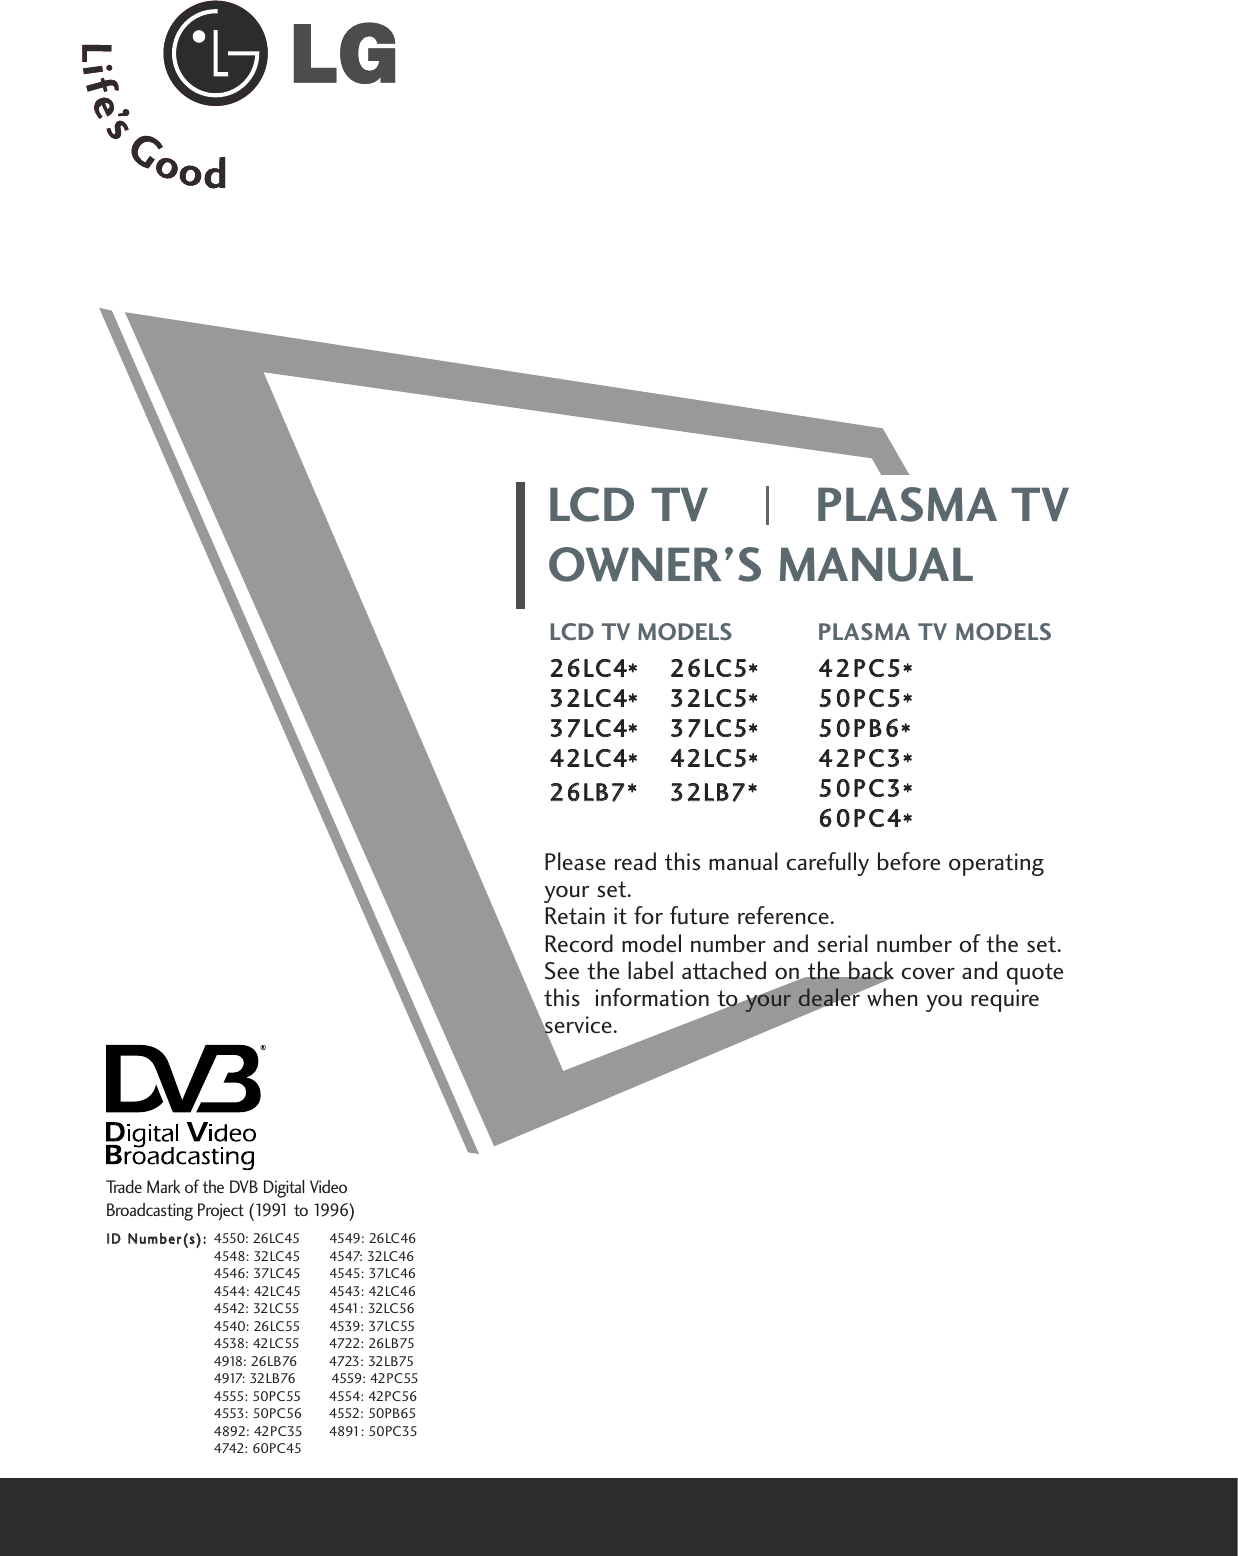 Lg 26 Lc5 Users Manual SAC30033609_en